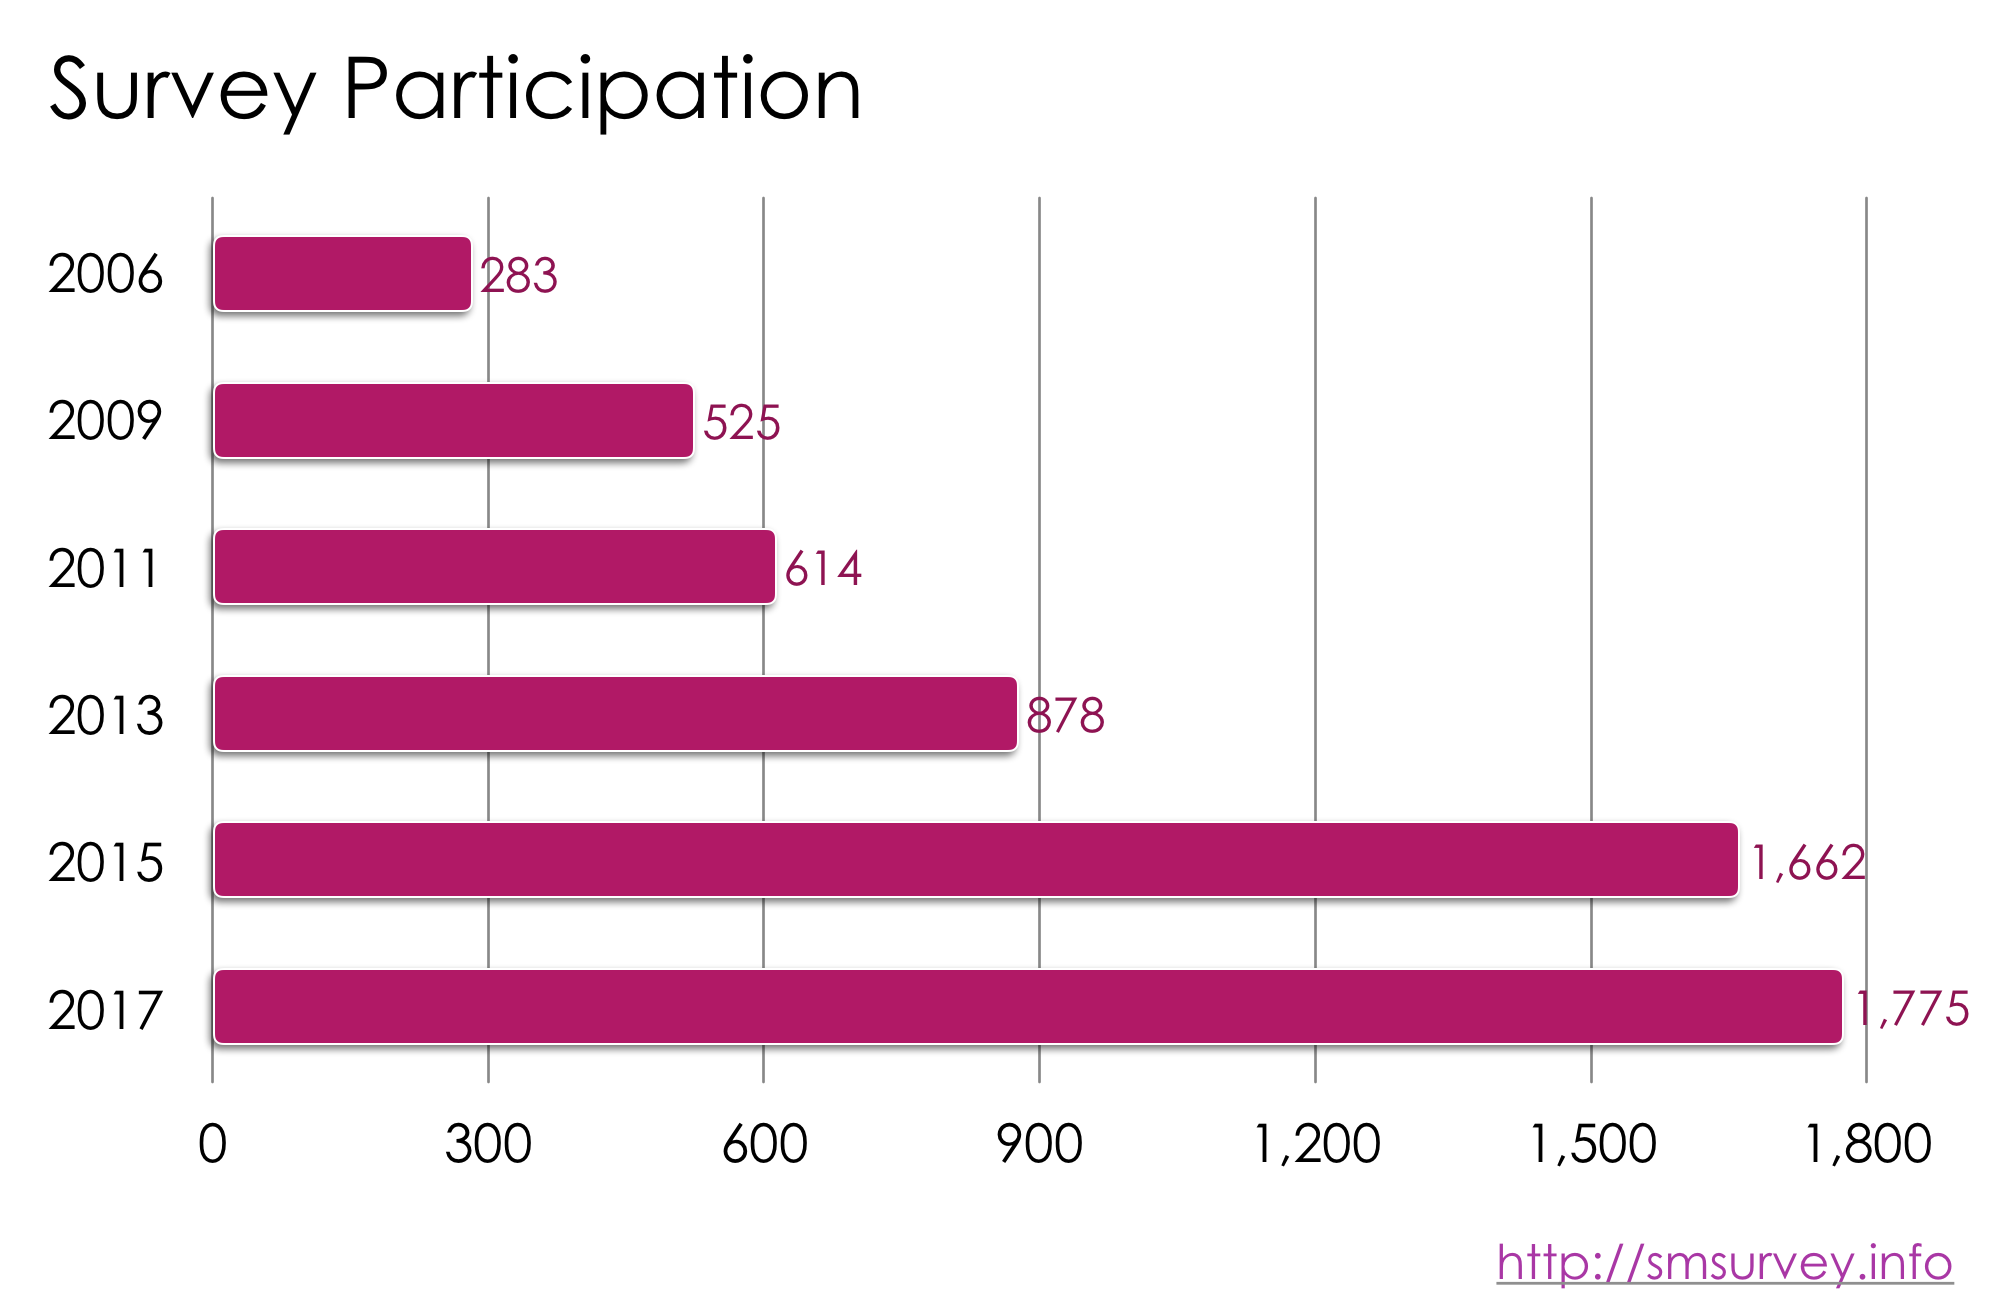 Survey Participation Rate by Year